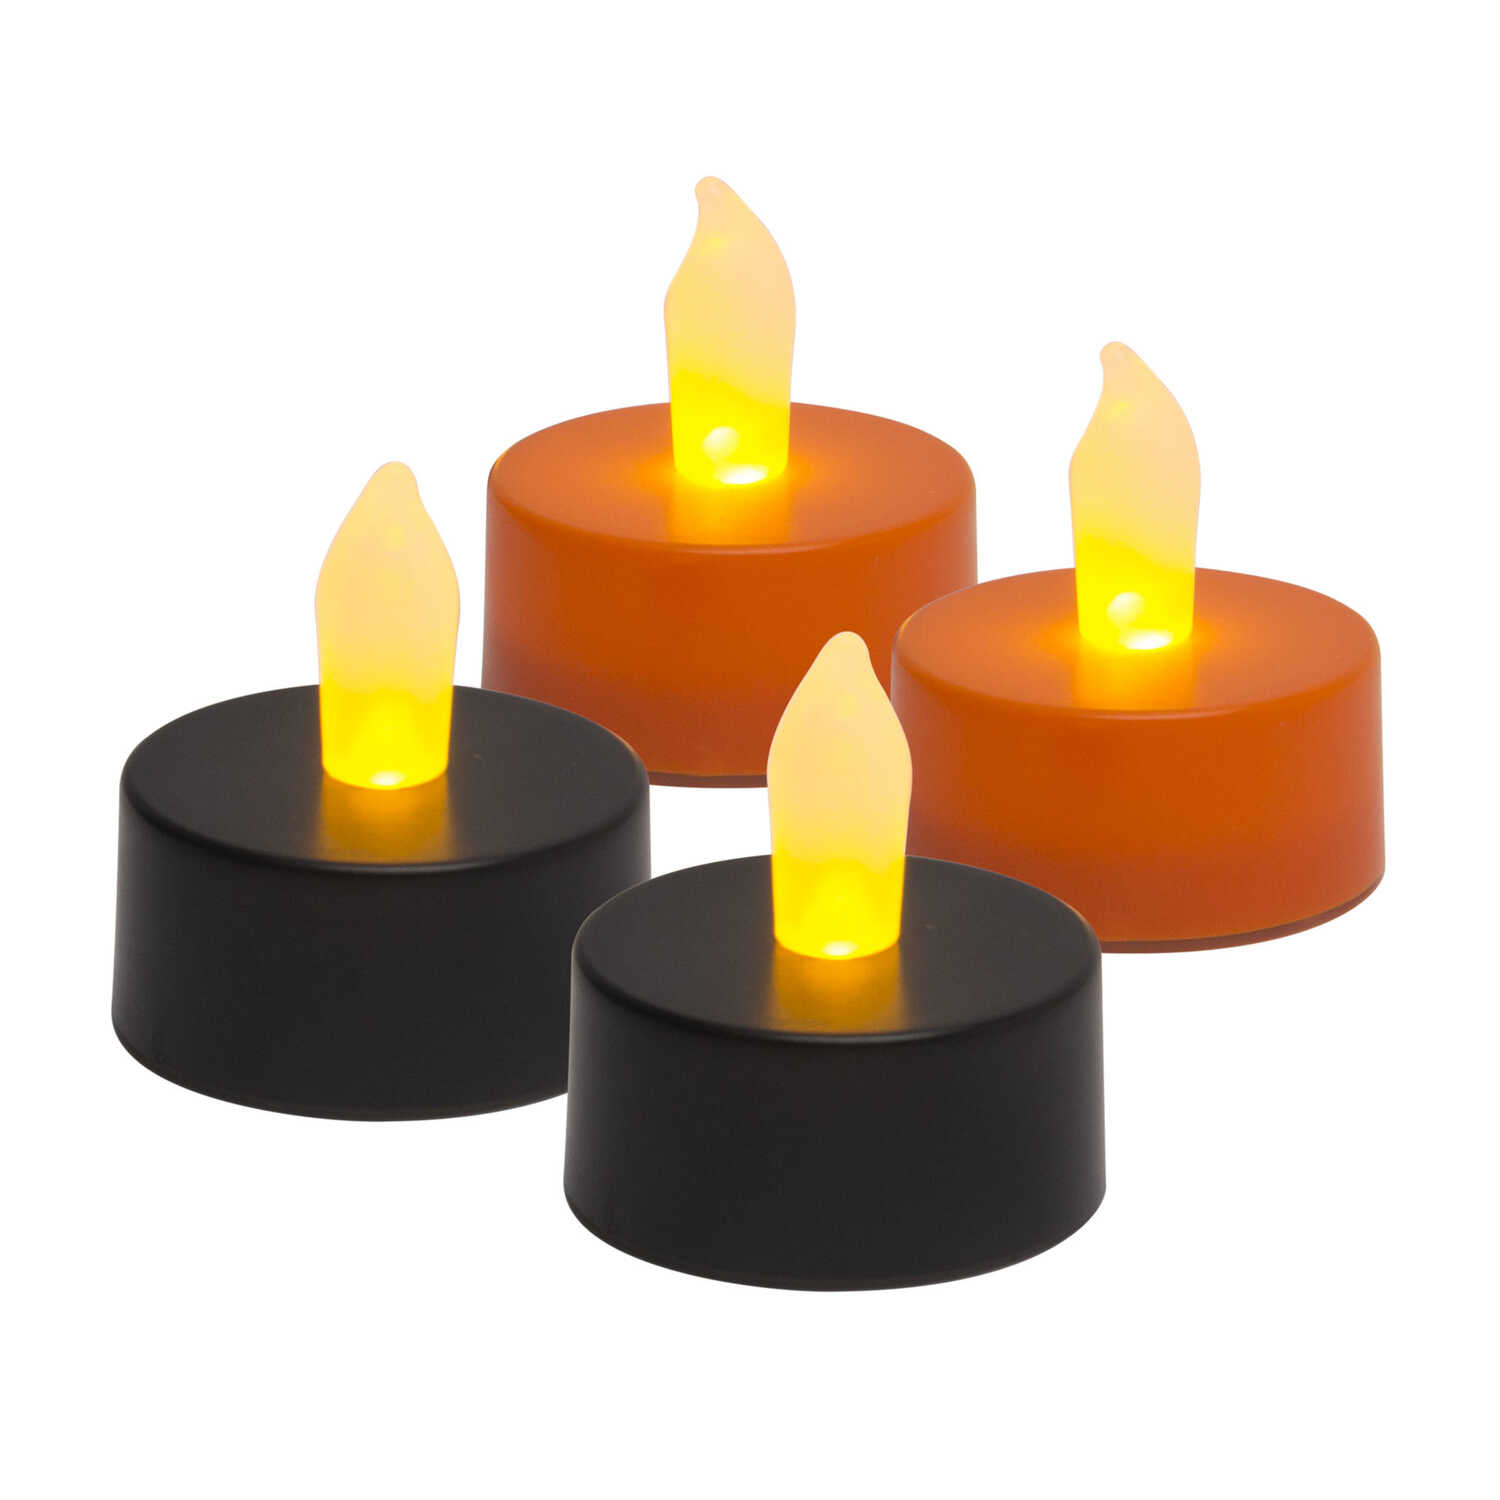 Inglow  Flameless Tea light Candle  Lighted Halloween Decoration  1 in. H x 1 in. W x 1 in. L 4 pk